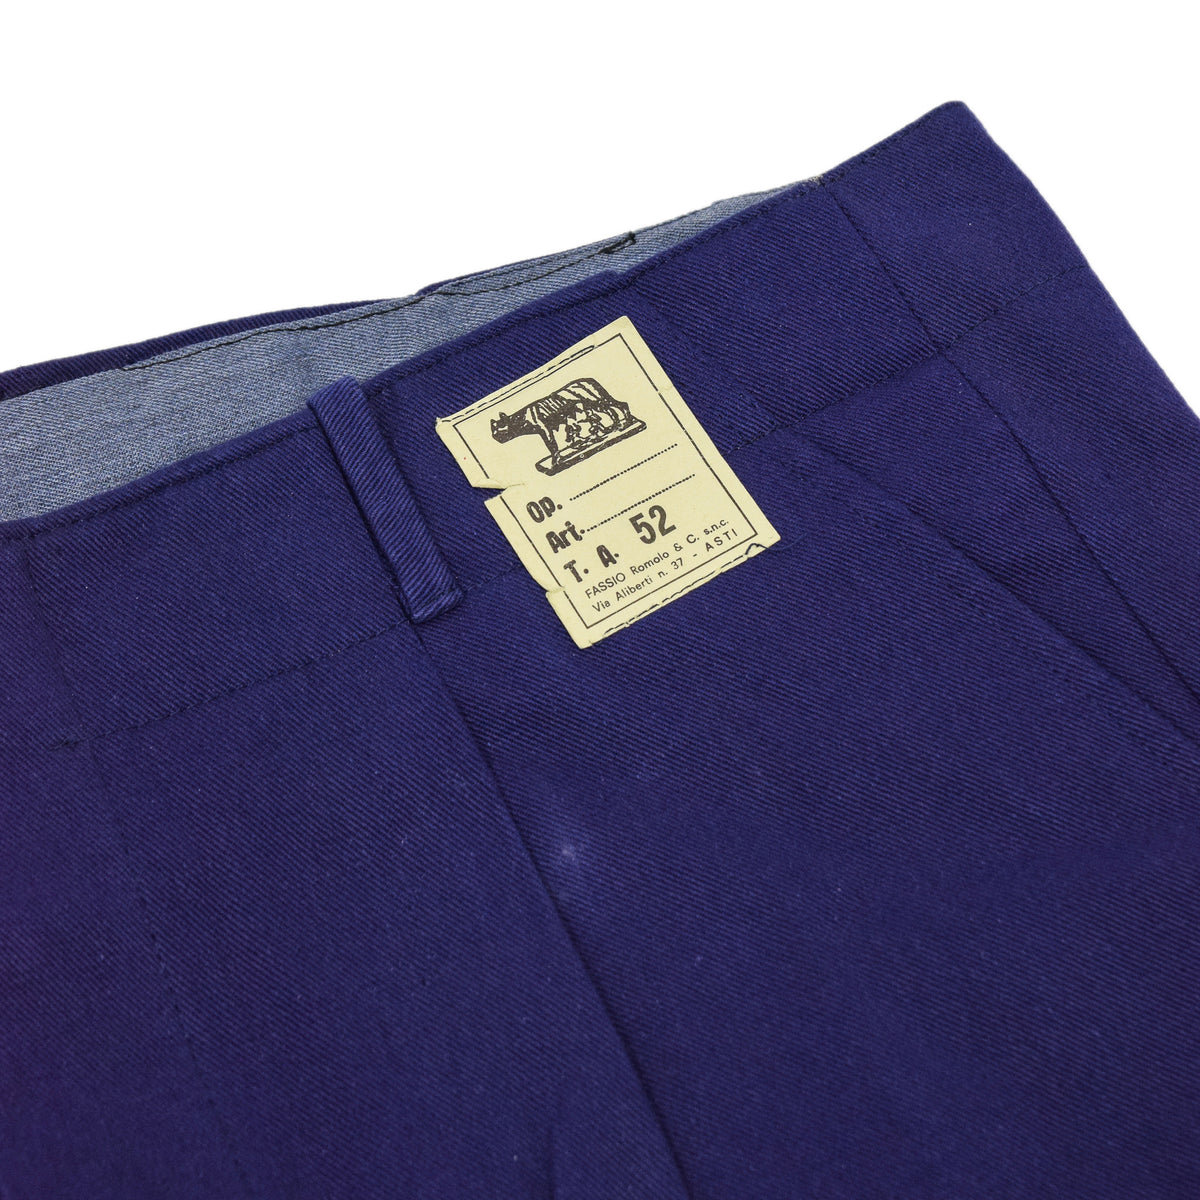 Vintage Workwear Blue French Style Work Utility Trousers Italy Made 36 W 28 L manufacturers label